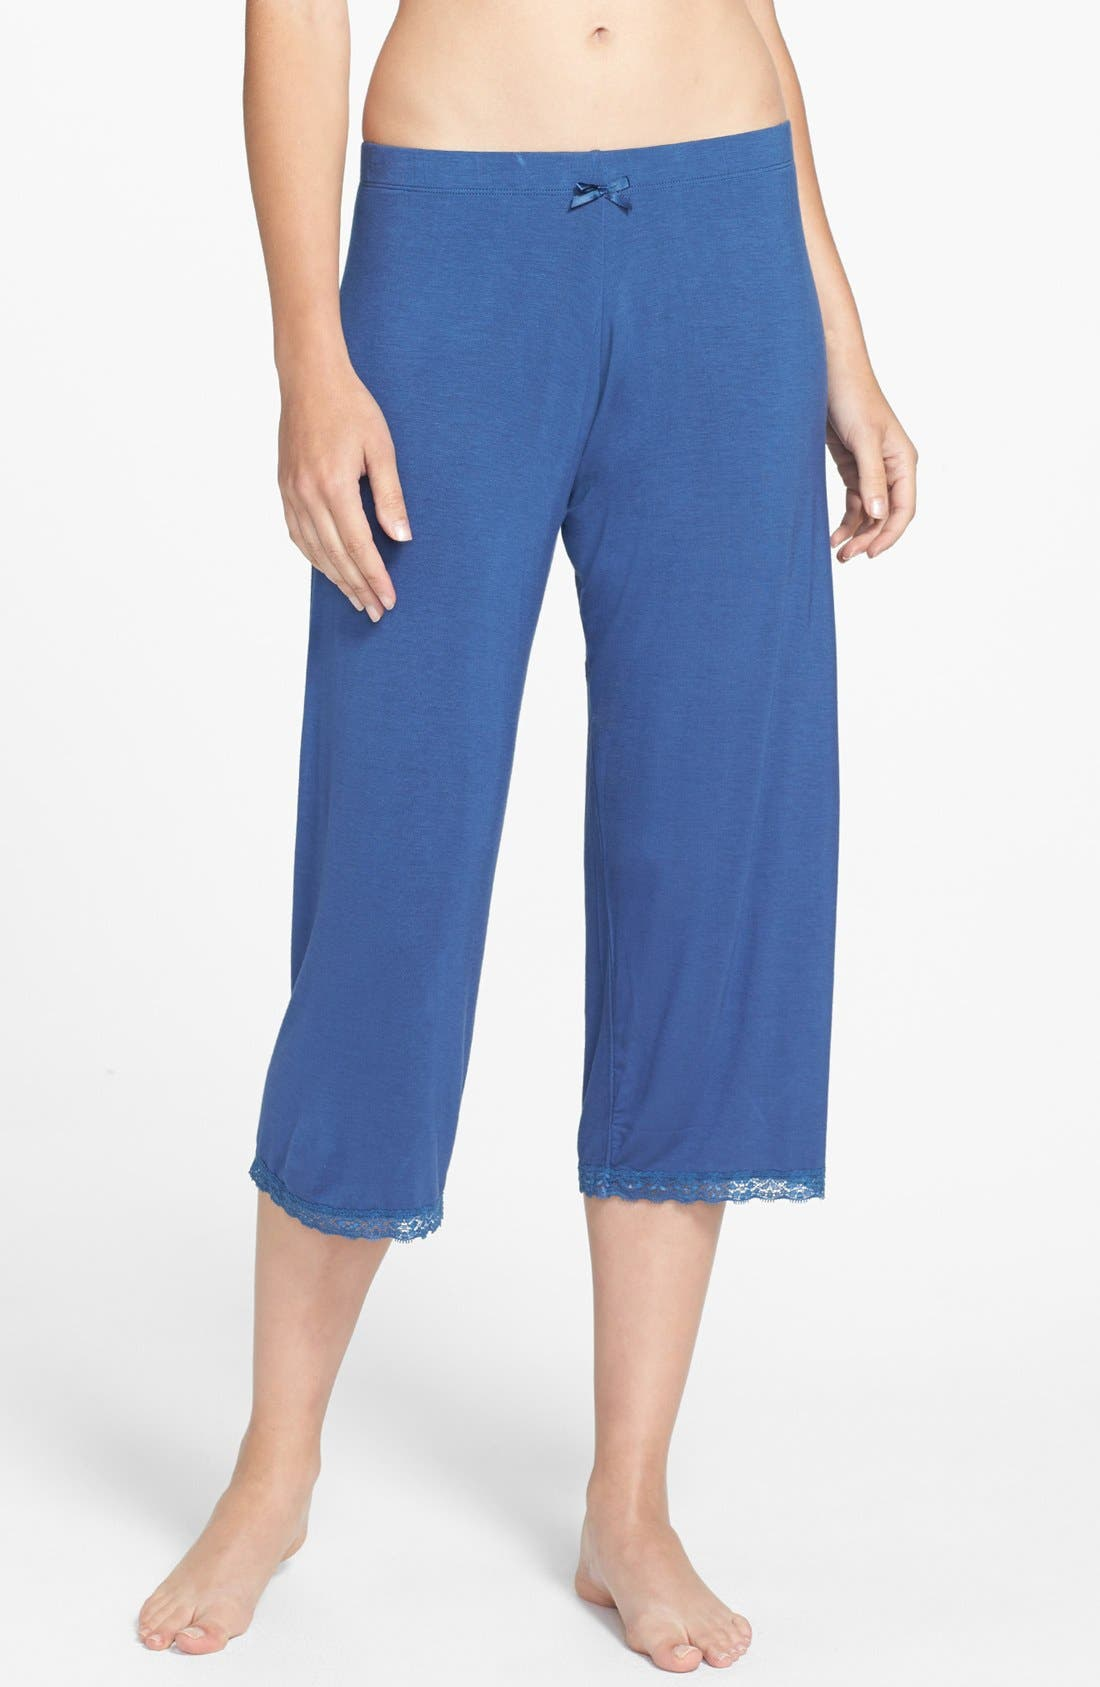 Alternate Image 1 Selected - Cake 'Torte' Crop Maternity Pants